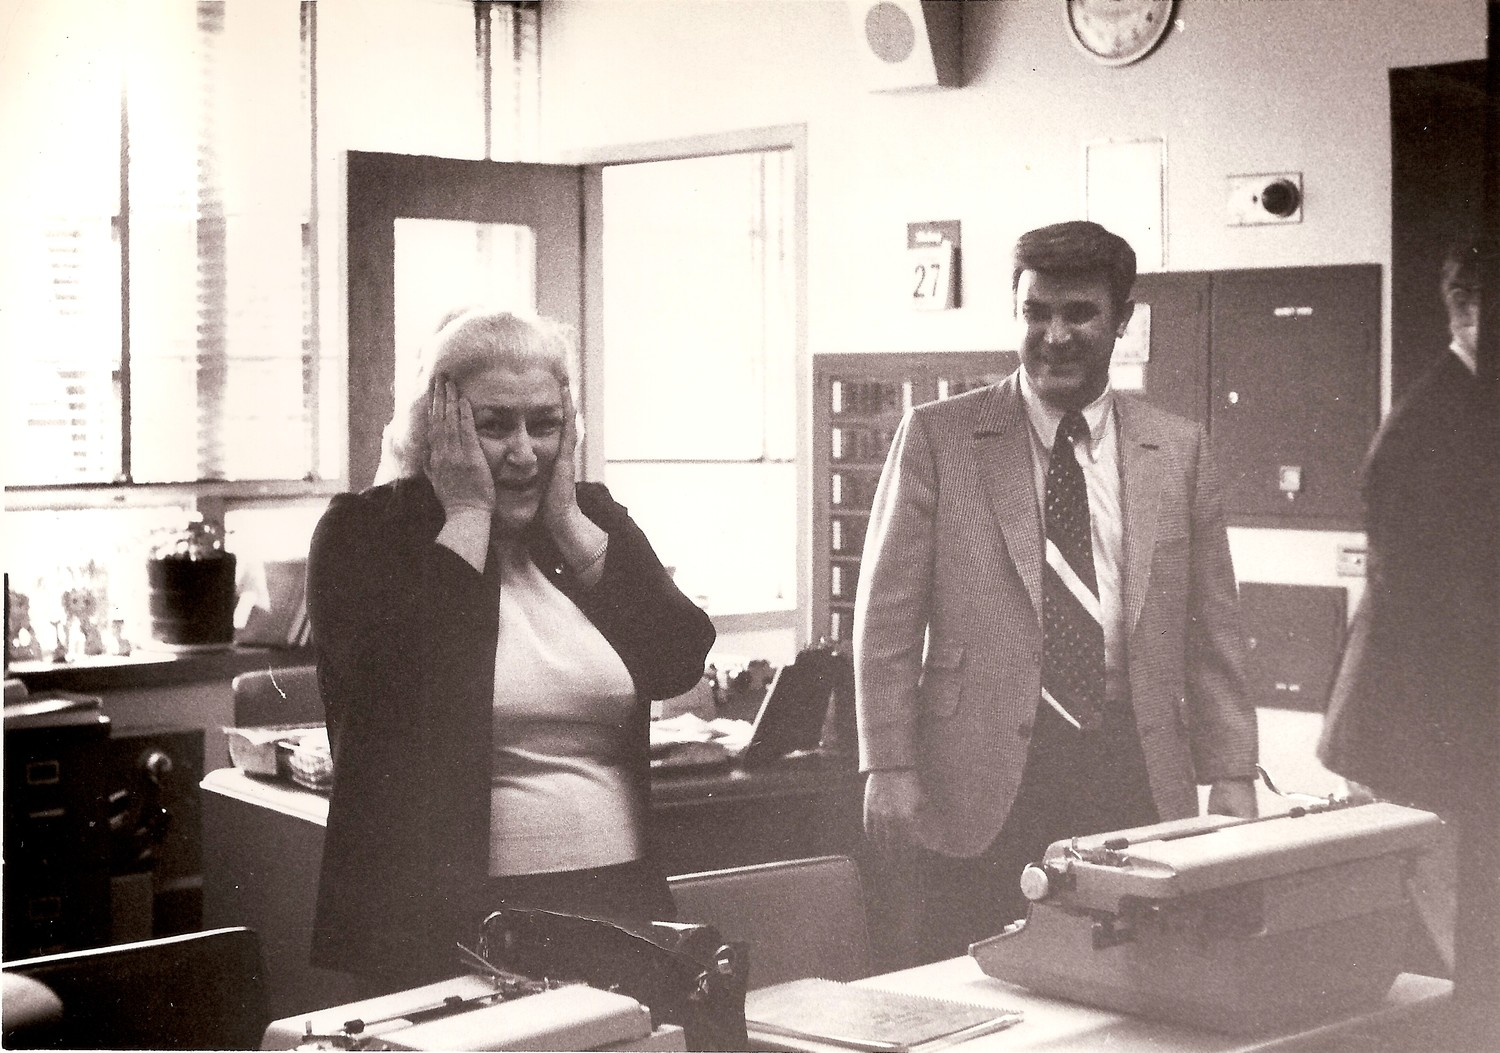 Fifi McFadden, left, taught English at Bethpage High School for 26 years, and retired in 1990.